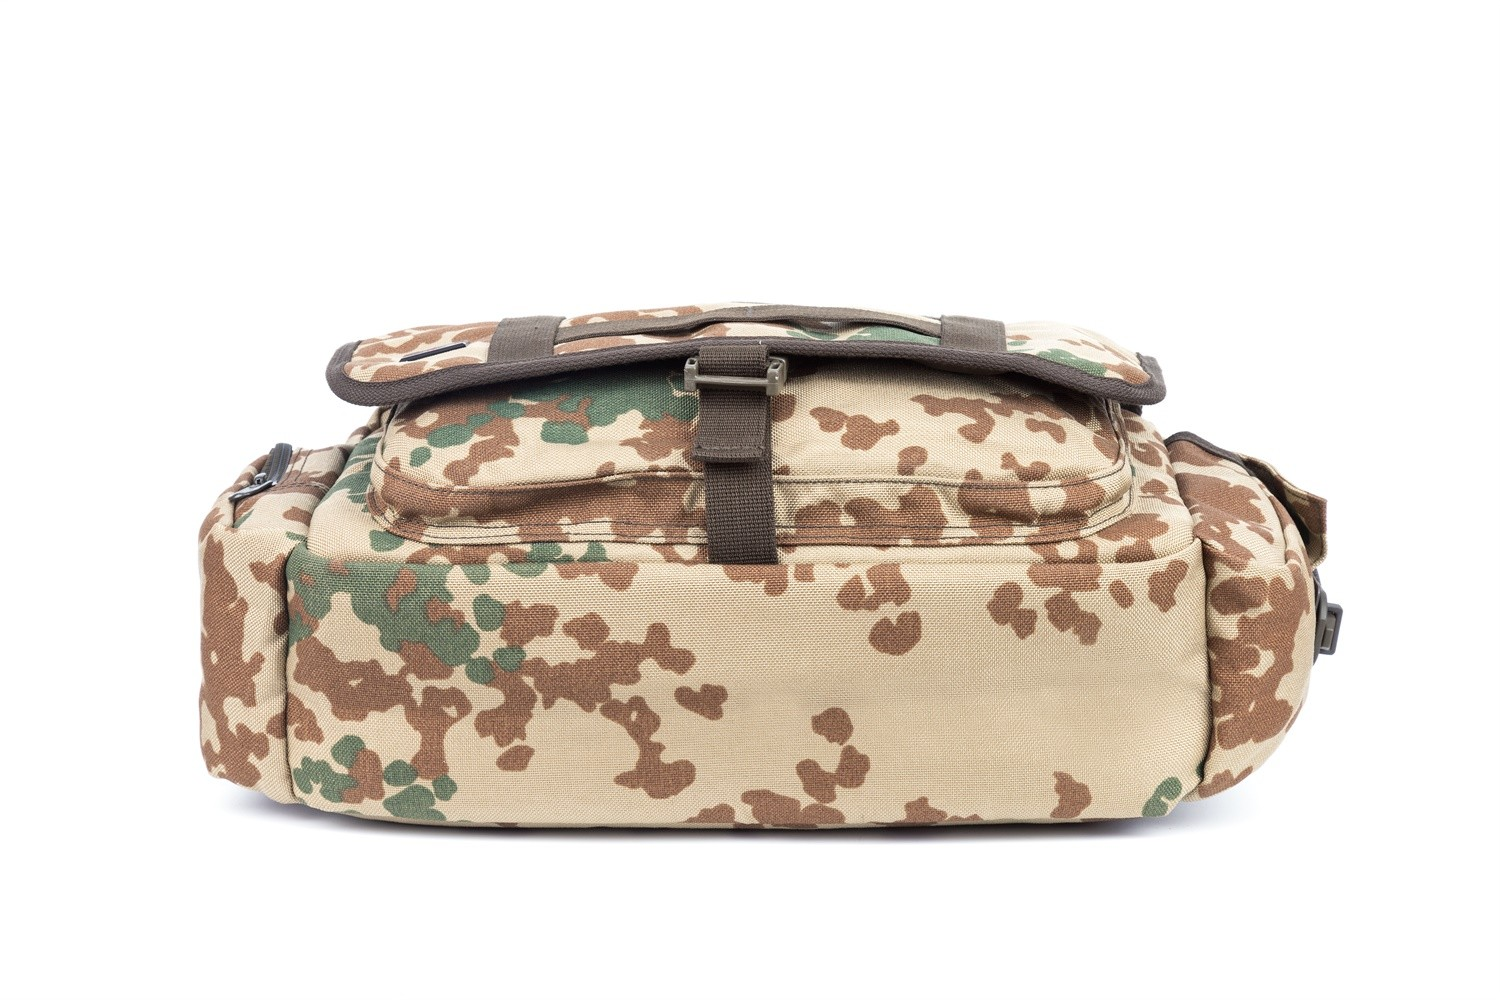 GF bags-Find Military Gear Bags Military Messenger Bag From GF Bags-6